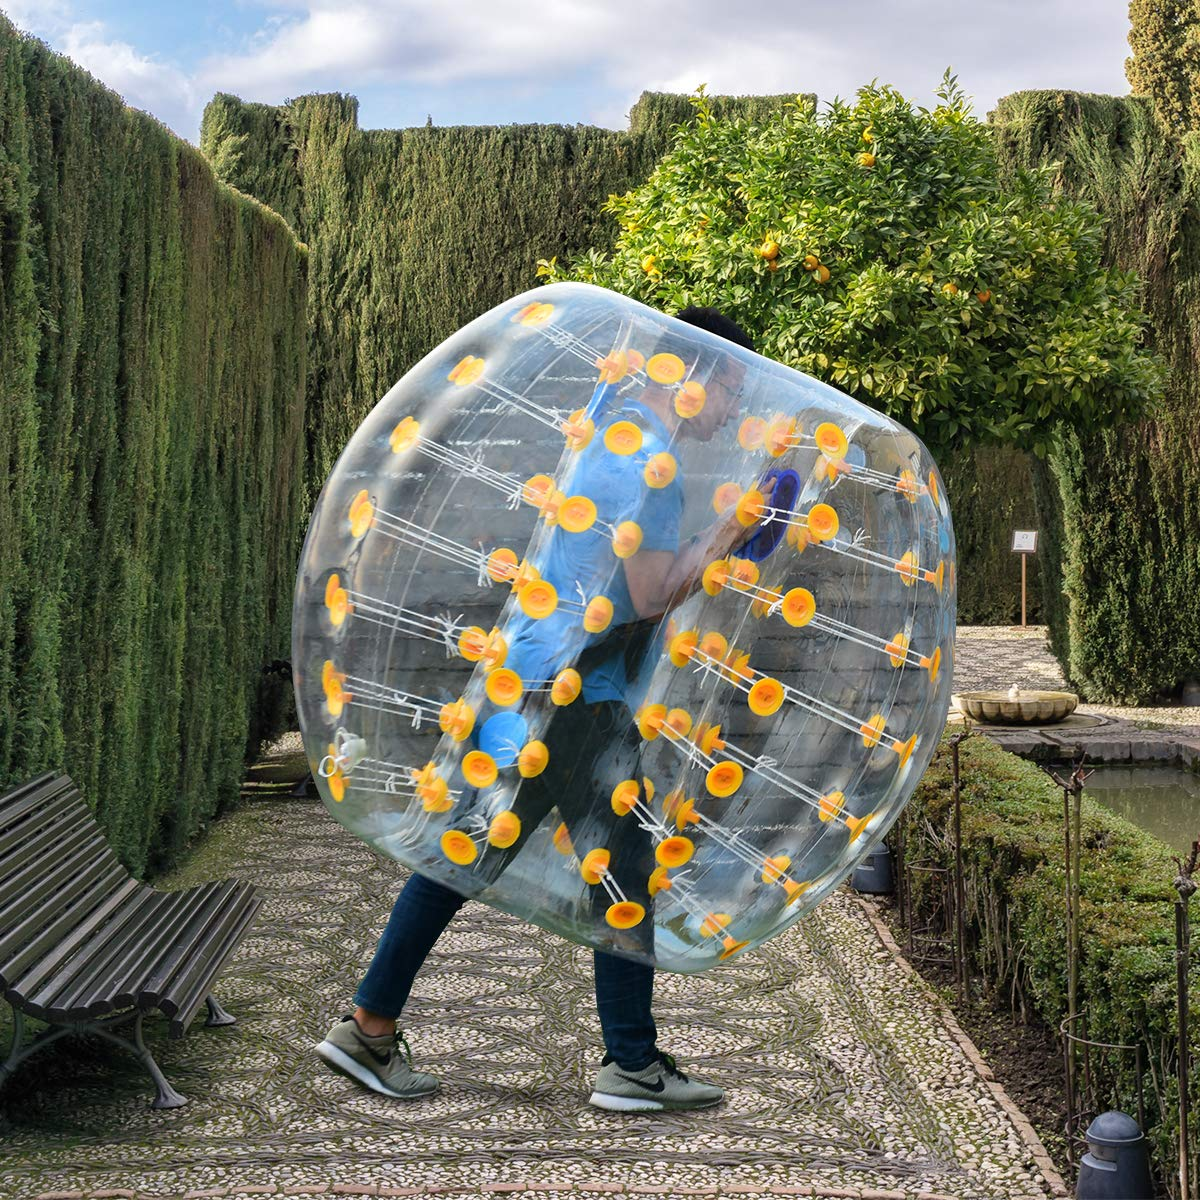 Costzon Inflatable Bumper Soccer Ball, Dia 5ft (1.5m) Giant Human Hamster Bubble Ball, 8mm Thickness Transparent PVC Zorb Ball for Kids, Teens Outdoor Team Gaming Play (Yellow) by Costzon